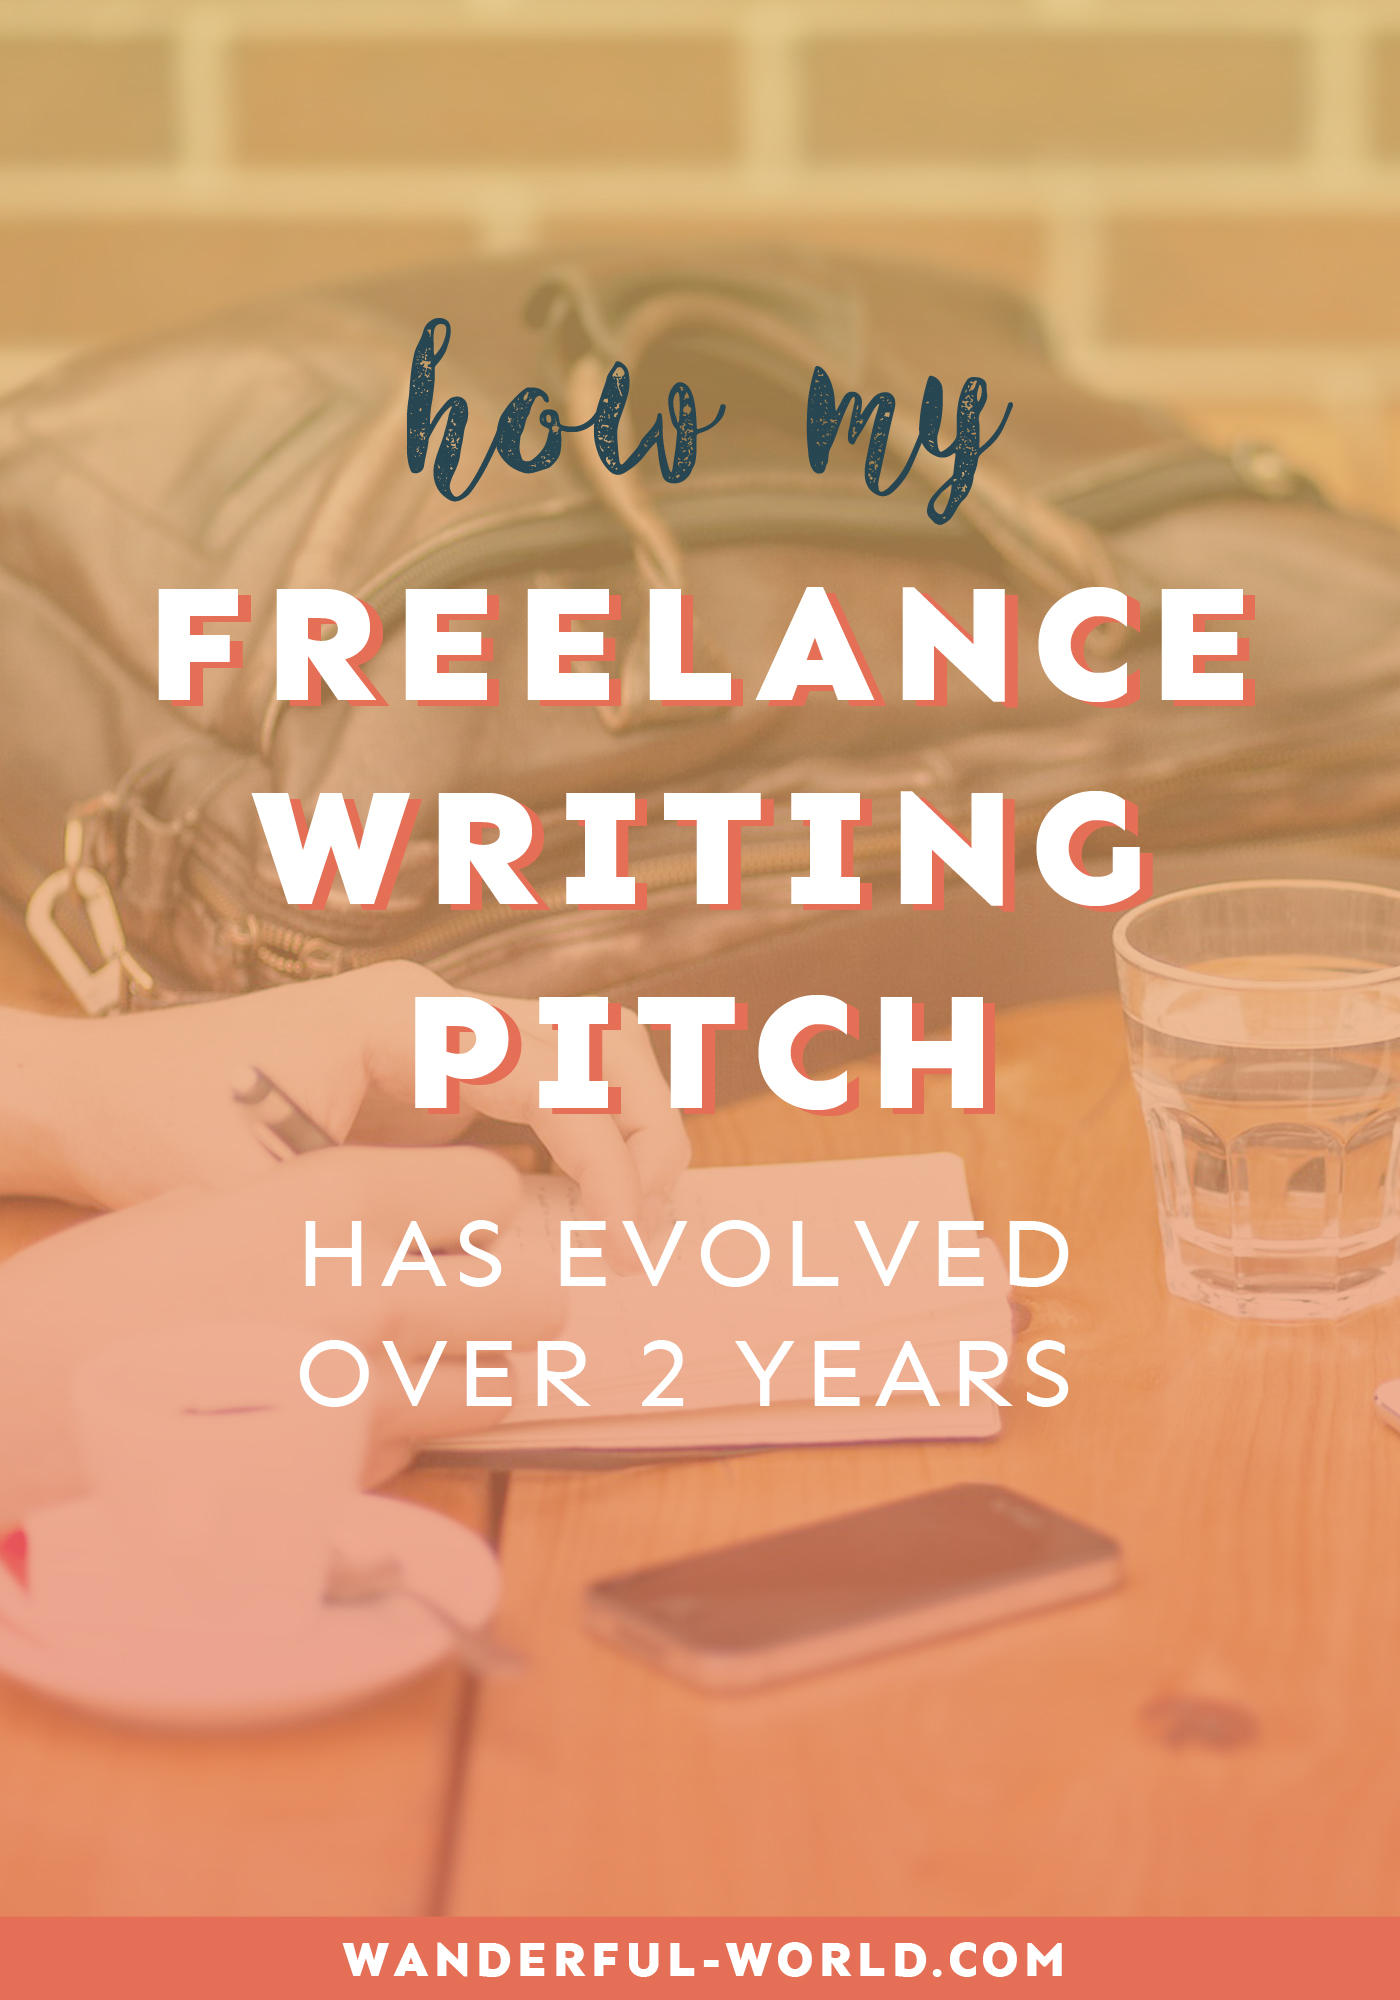 Wondering what a successful freelance writing pitch looks like? Look no further!